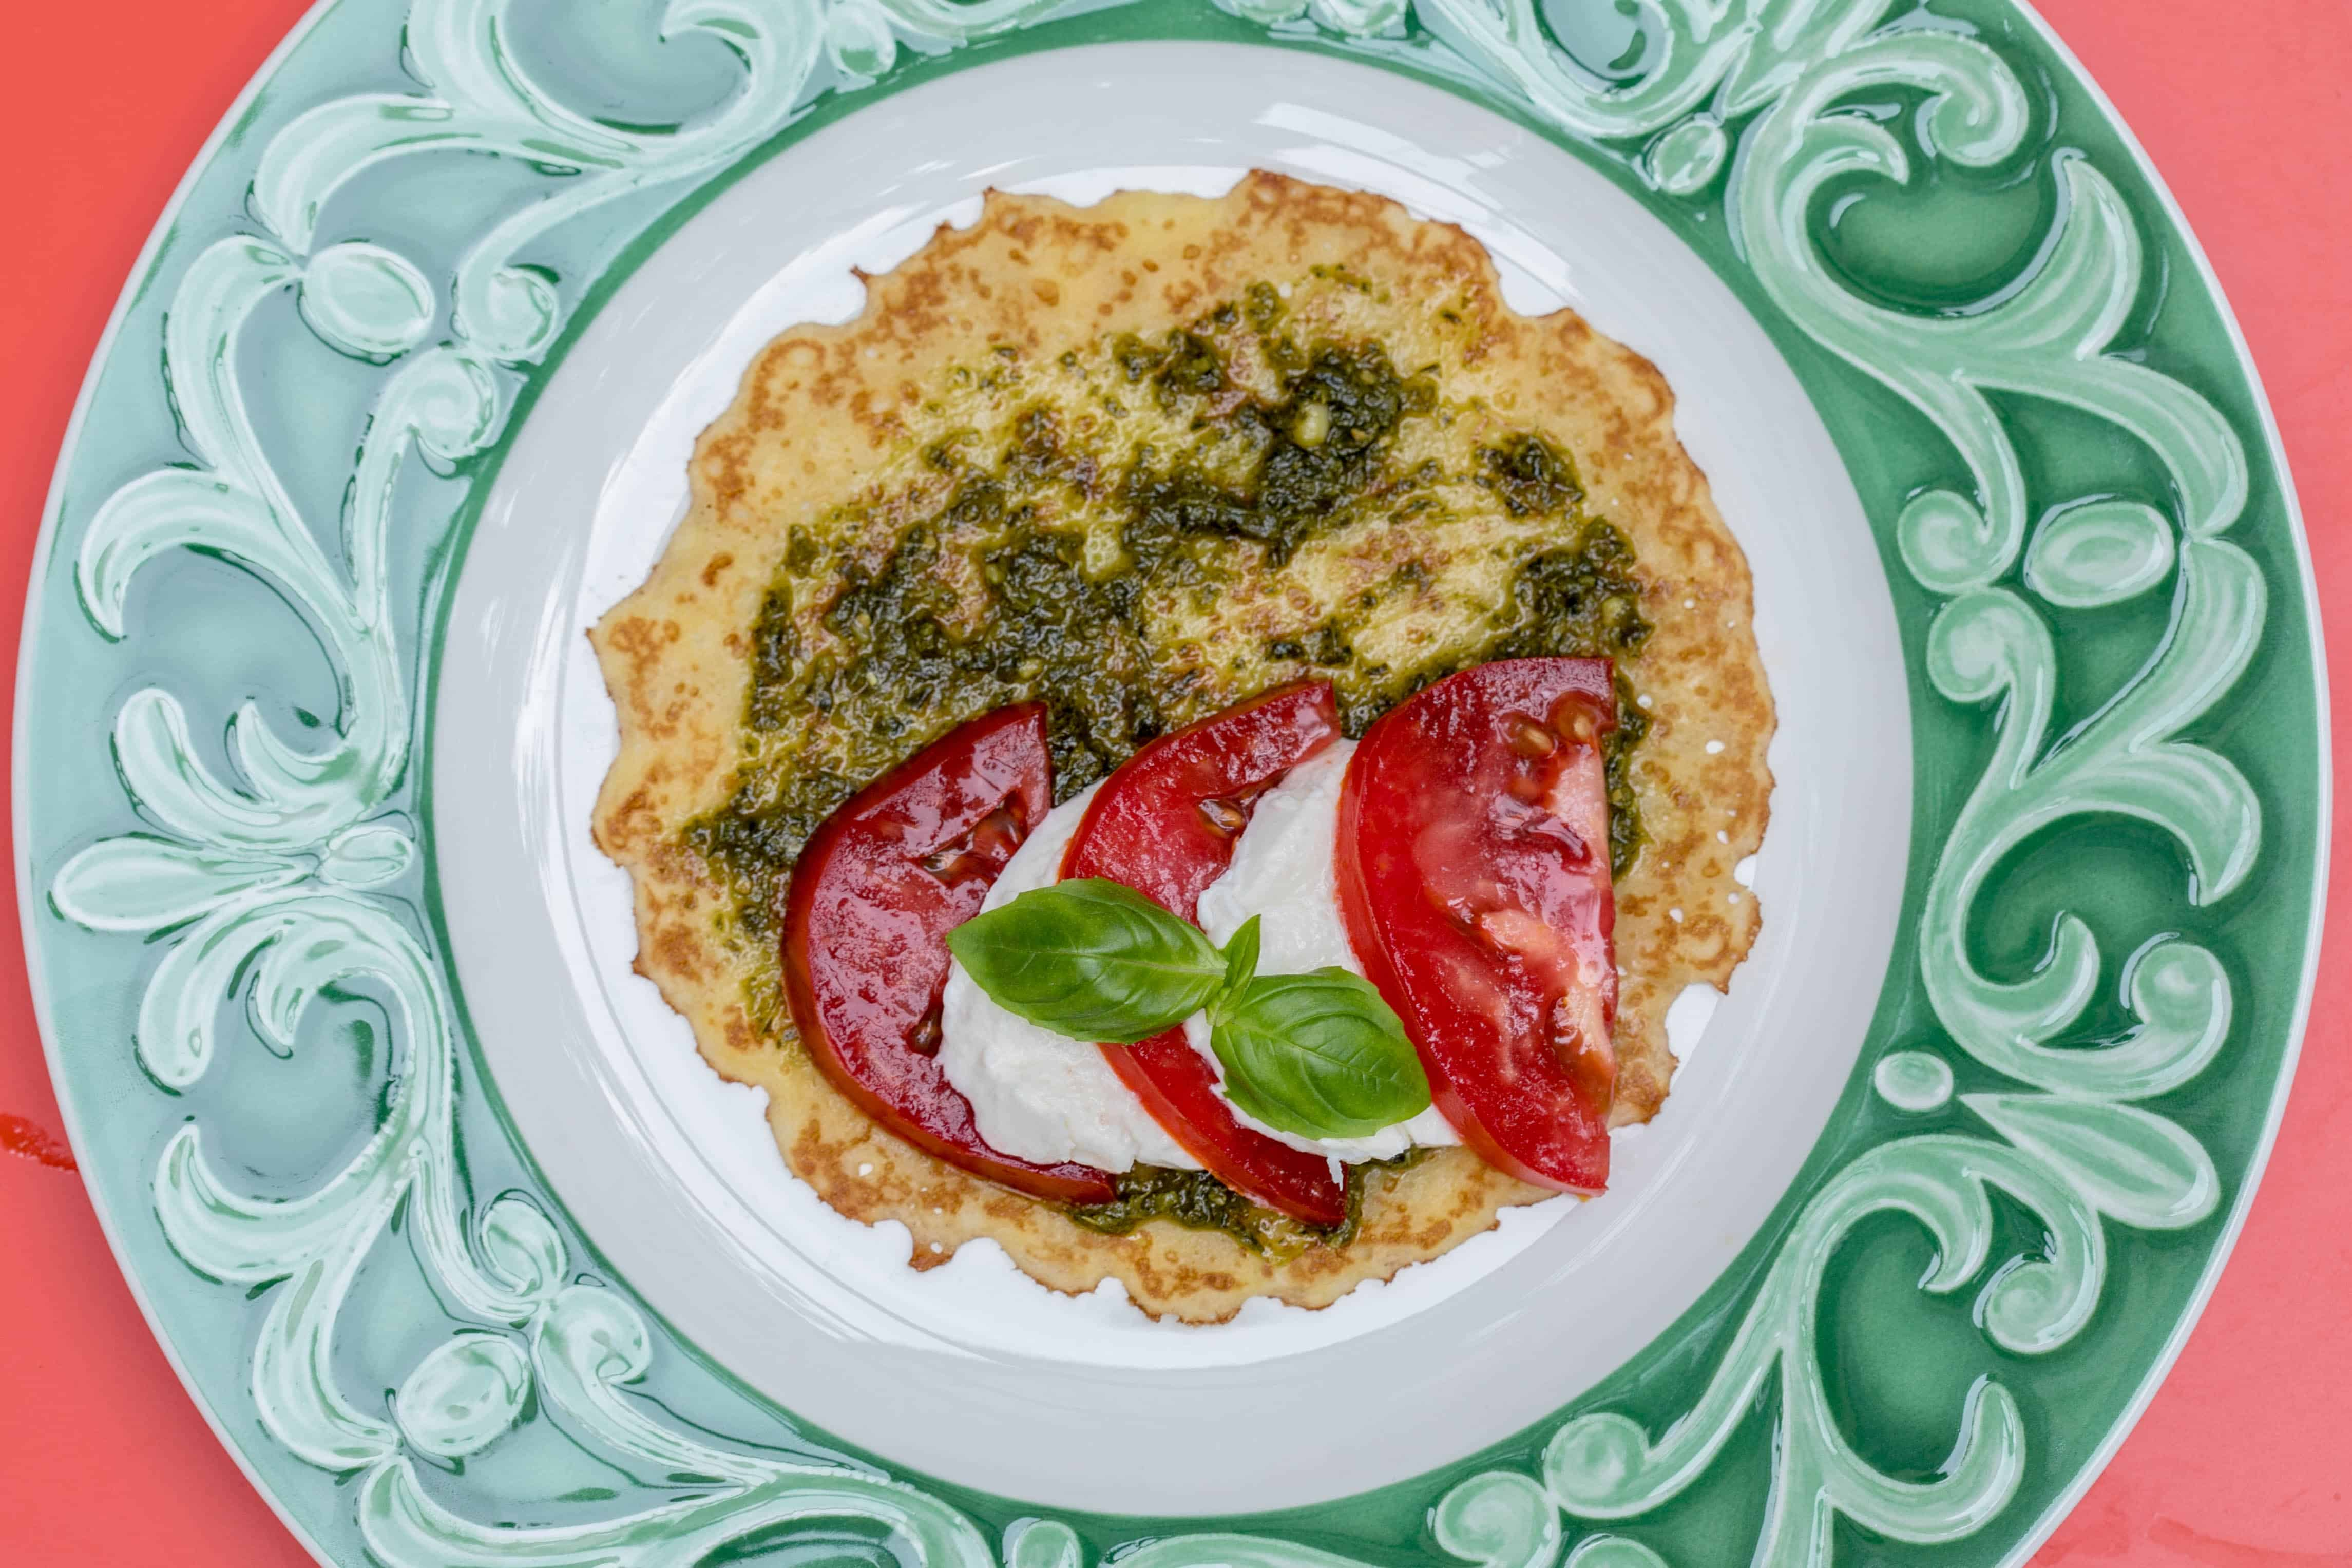 caprese crepe open face on a green and white plate with pesto, tomatoes, mozzarella, and fresh basil